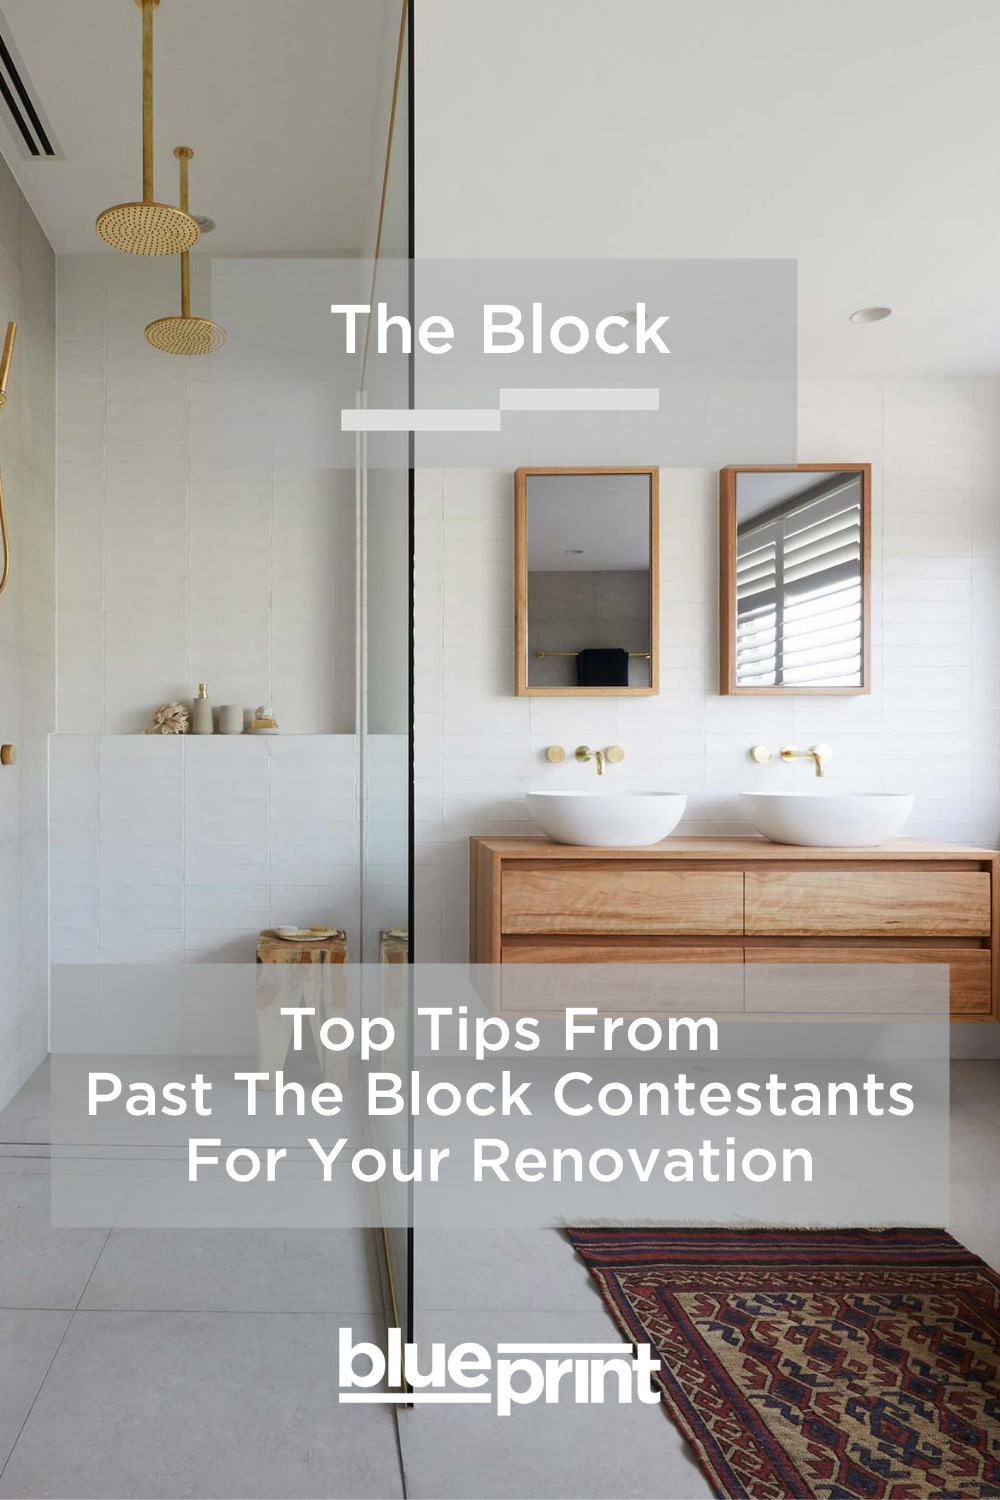 Photo of The Block Truths: Top Tips From Past Contestants For Your Renovation